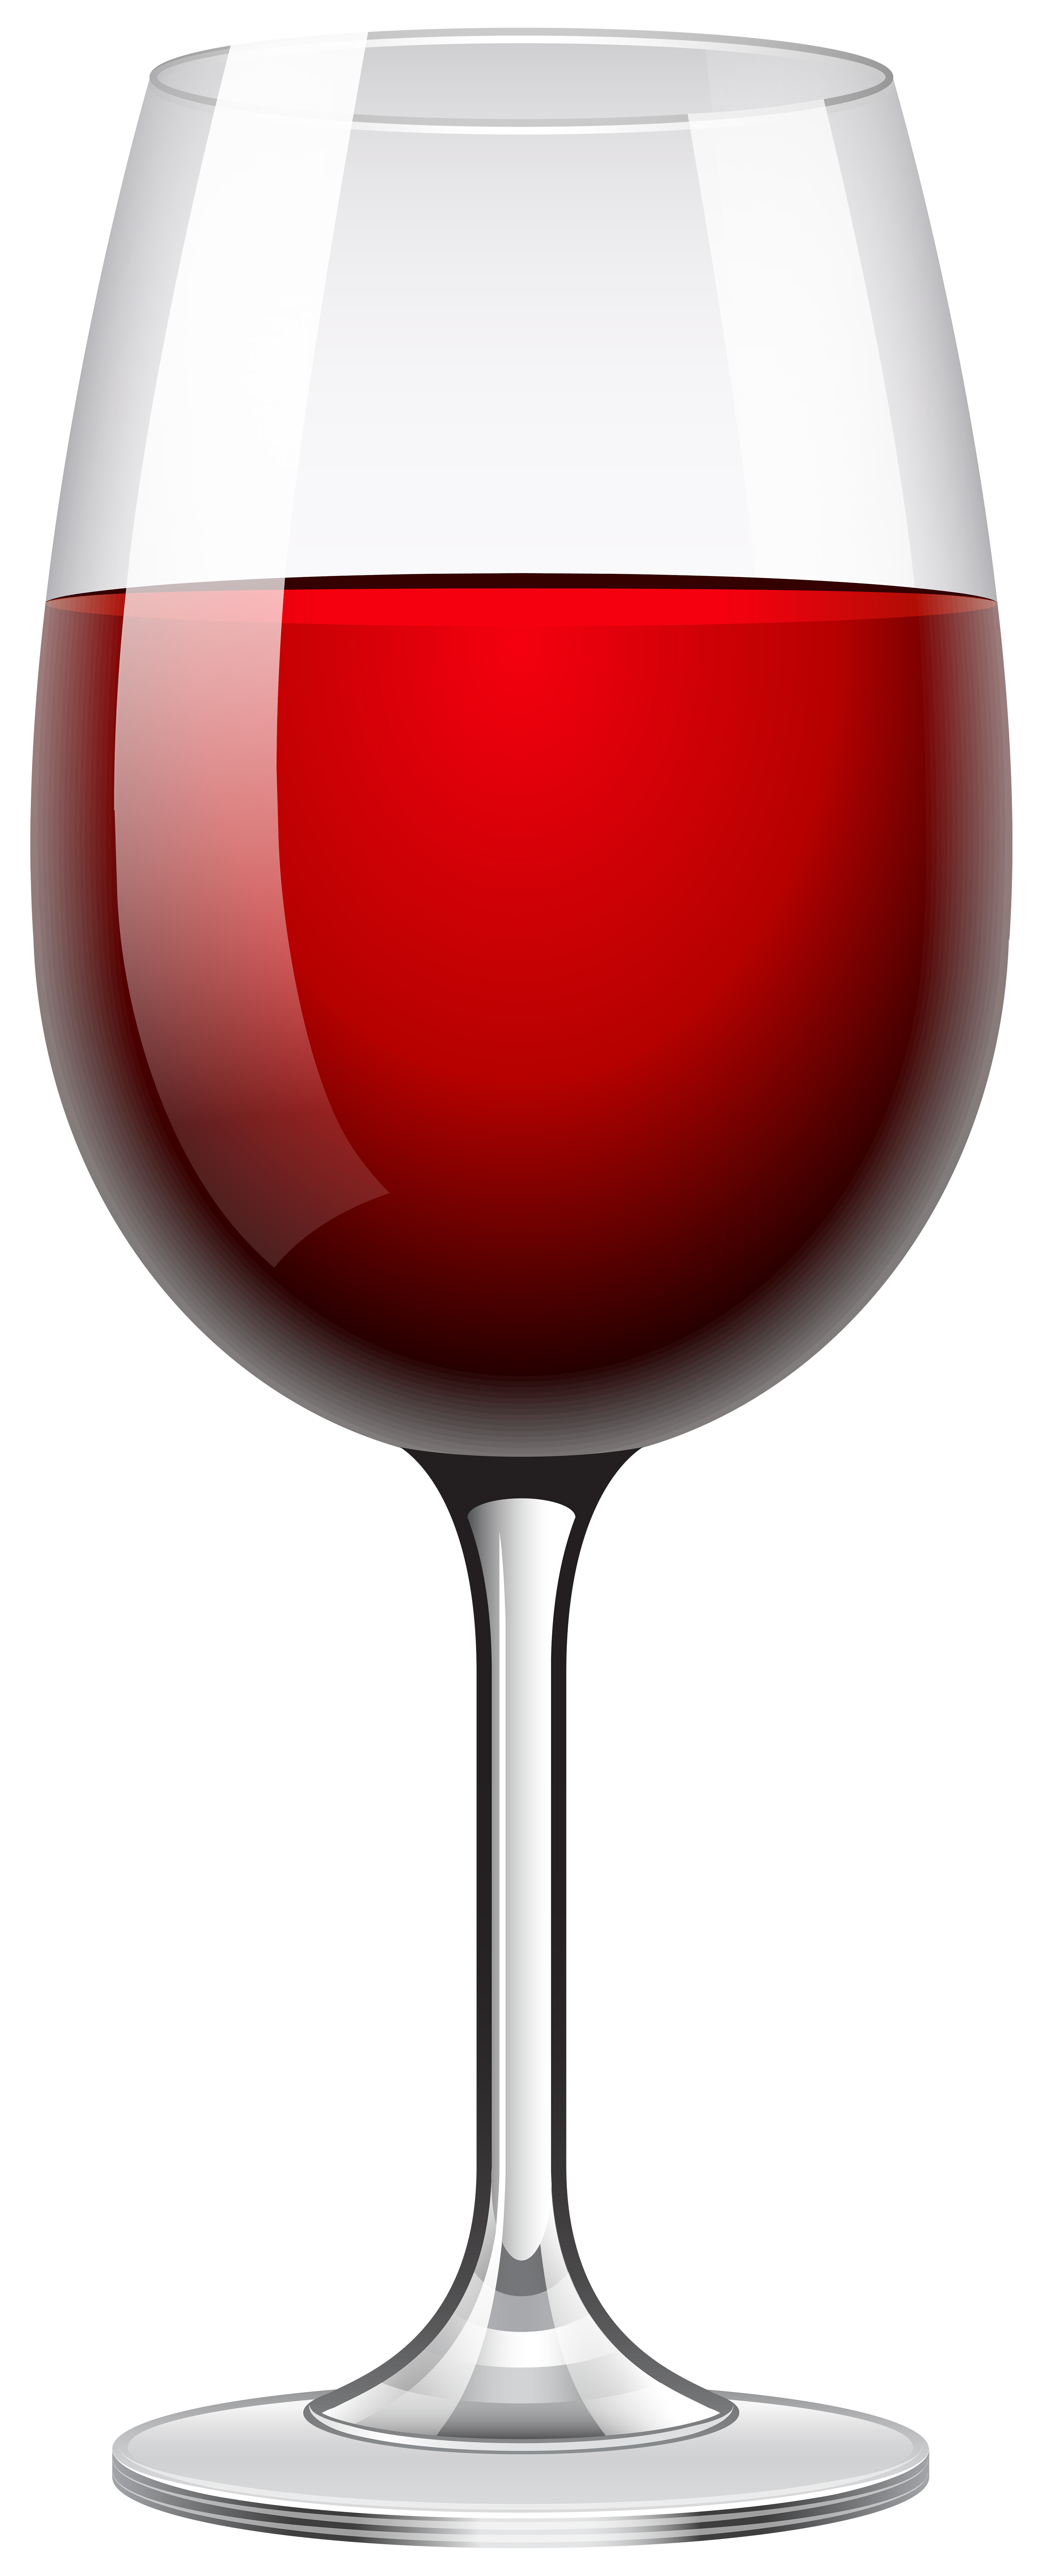 Red glass transparent png. Clipart halloween wine